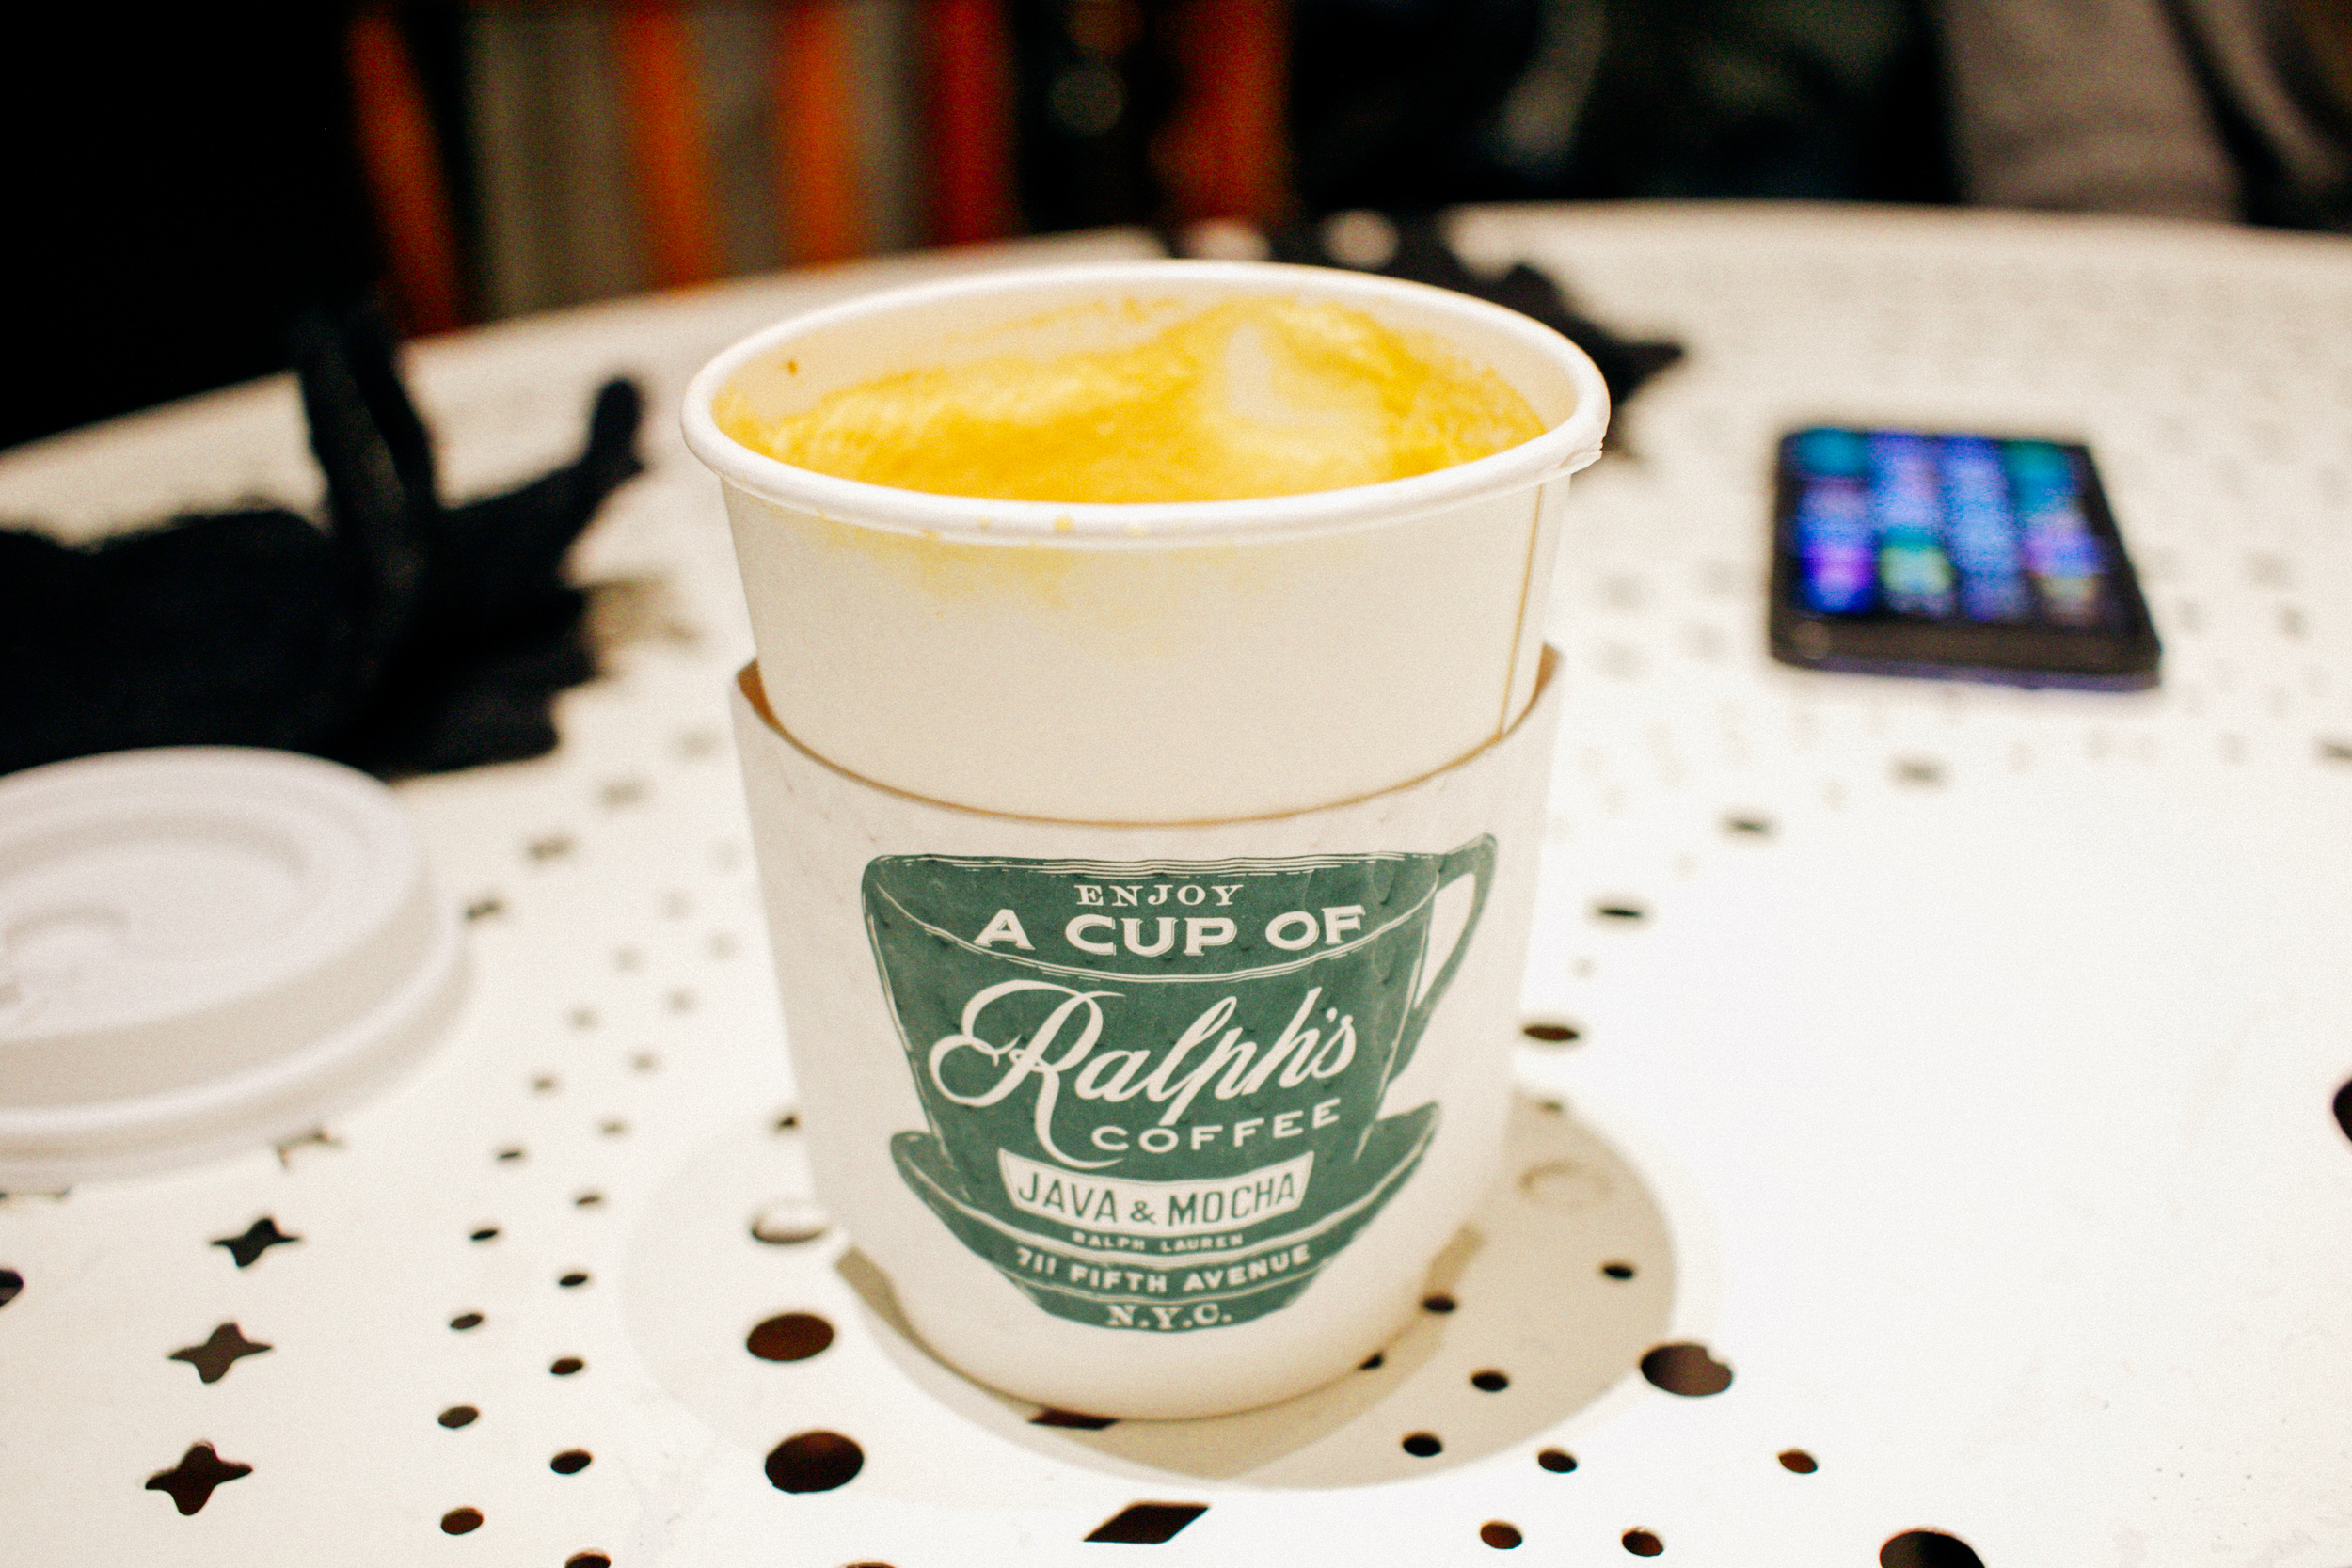 Ralph's coffee shop was soo good and I just loved that it was on the second floor of the Ralph Lauren store on 5th avenue!